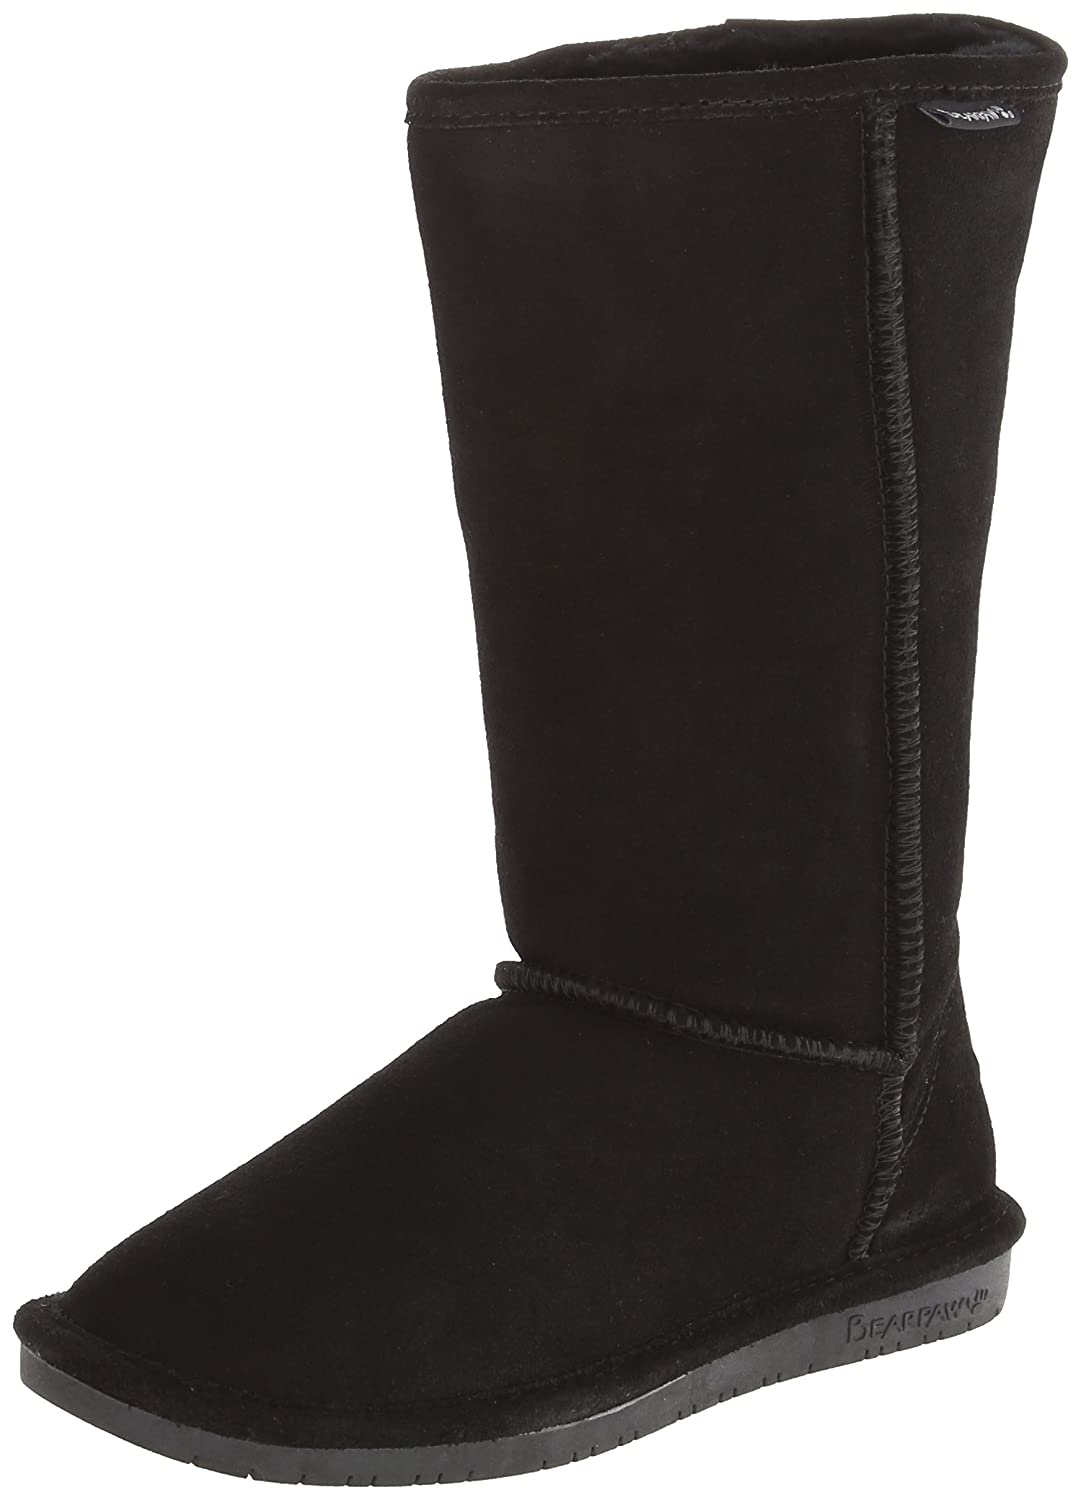 BEARPAW Women's Emma Tall Mid Calf Boot B077R39H3L 41 M EU / 10 B(M) US|Black